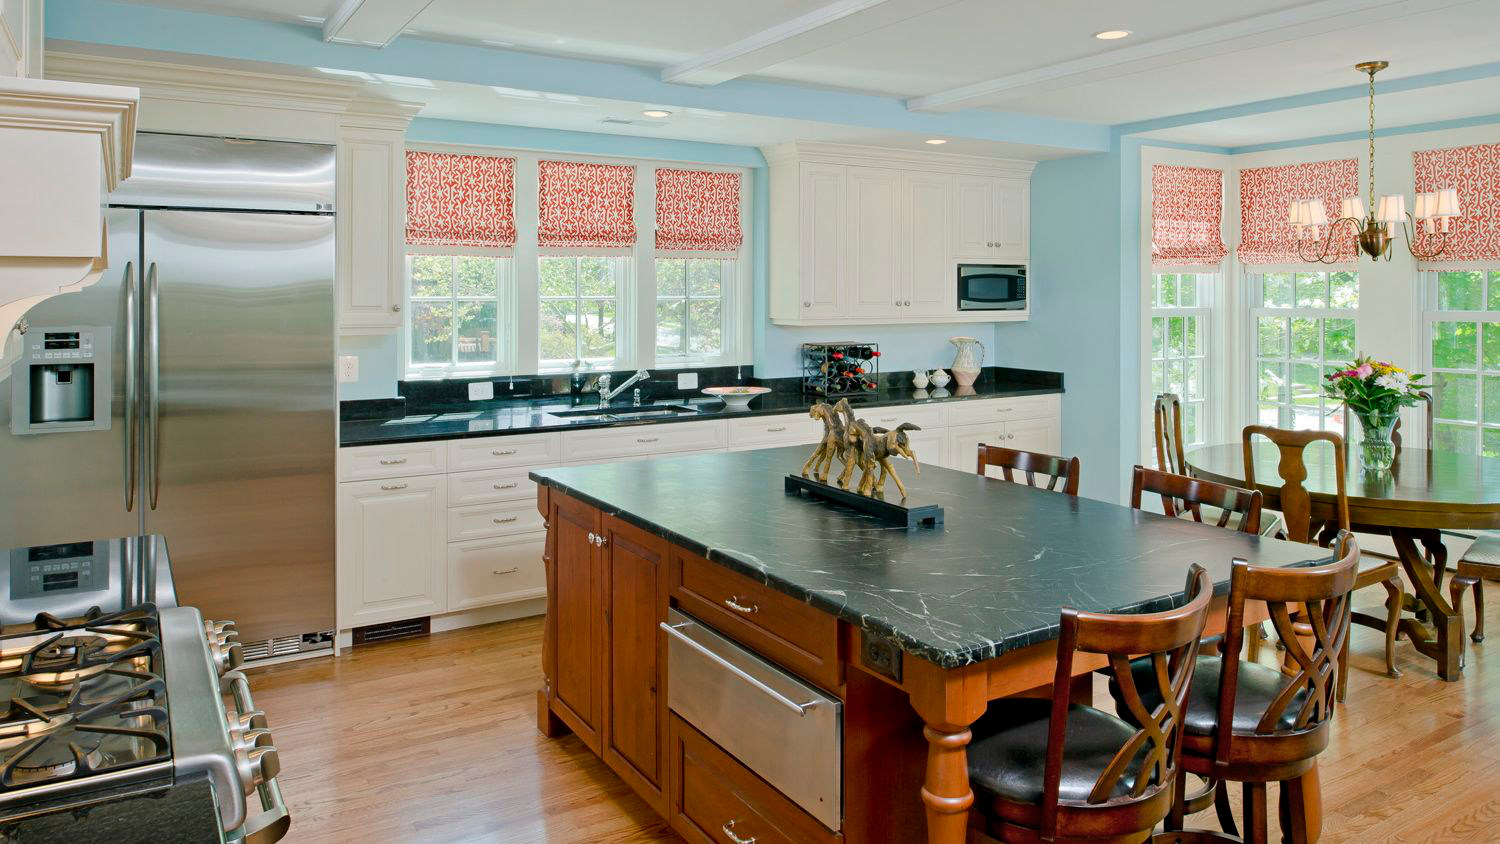 Chef's kitchen remodel using black granite